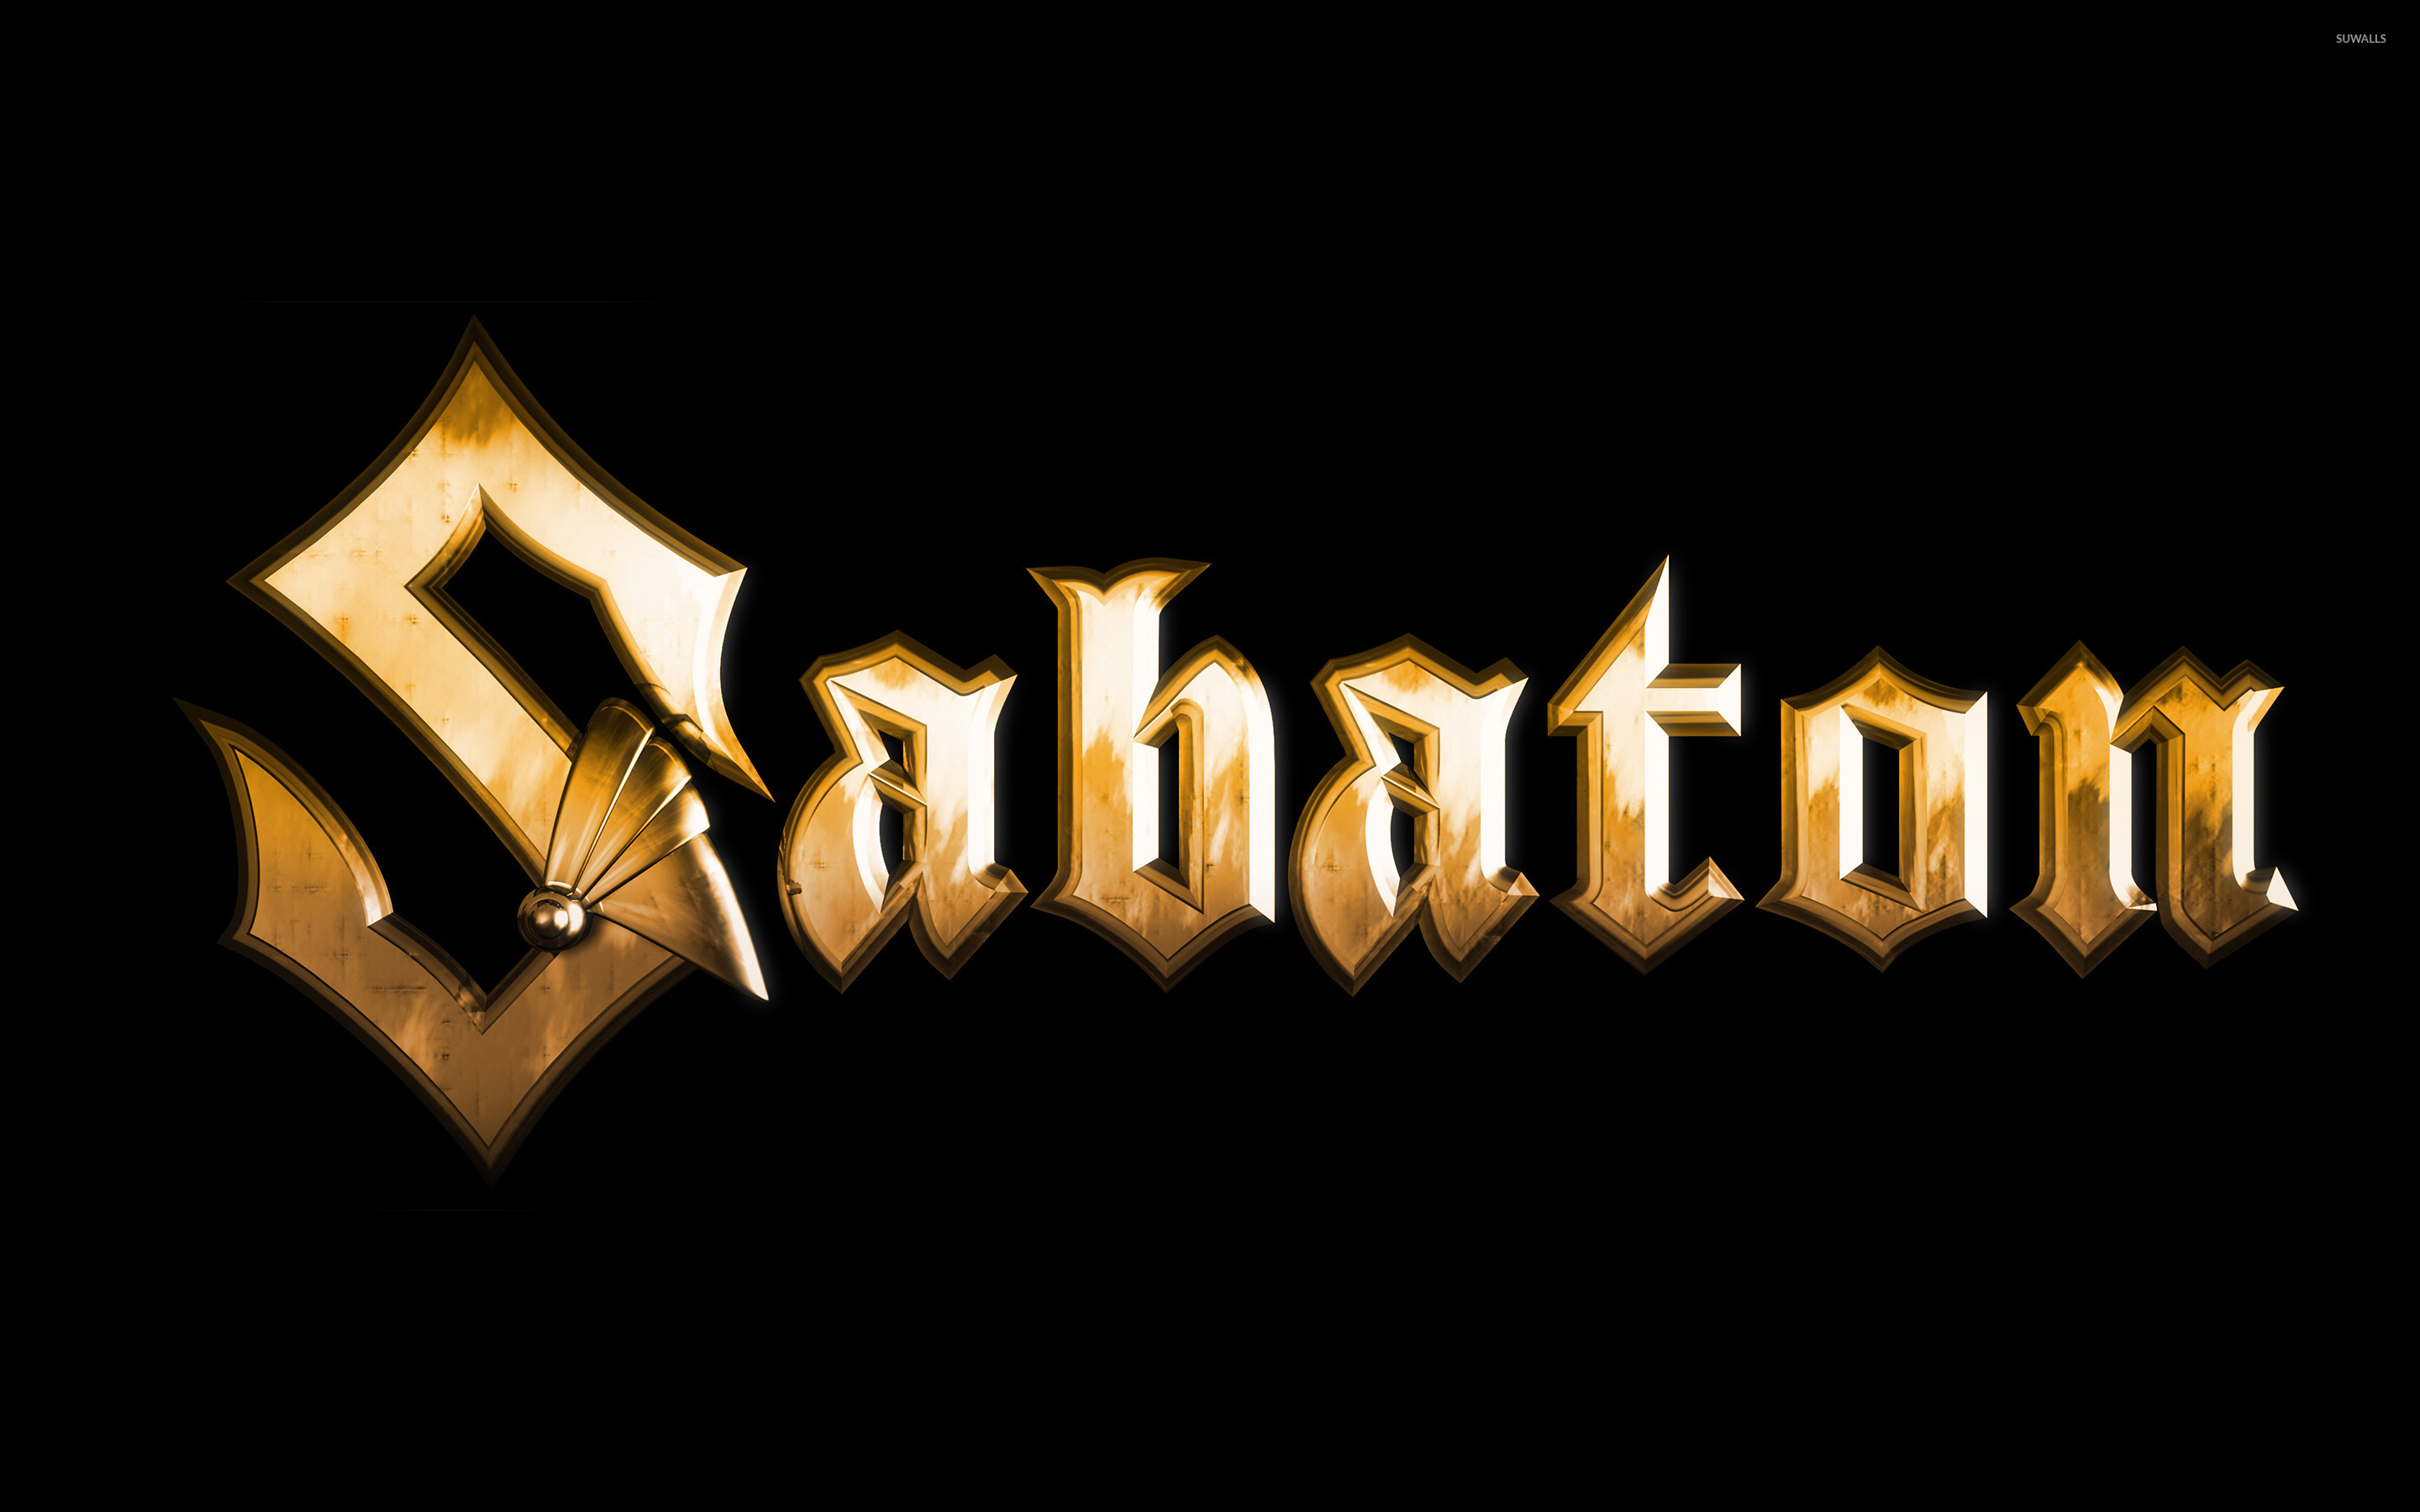 Sabaton 2 wallpaper music wallpapers 31397 for Wallpaper wallpaper wallpaper